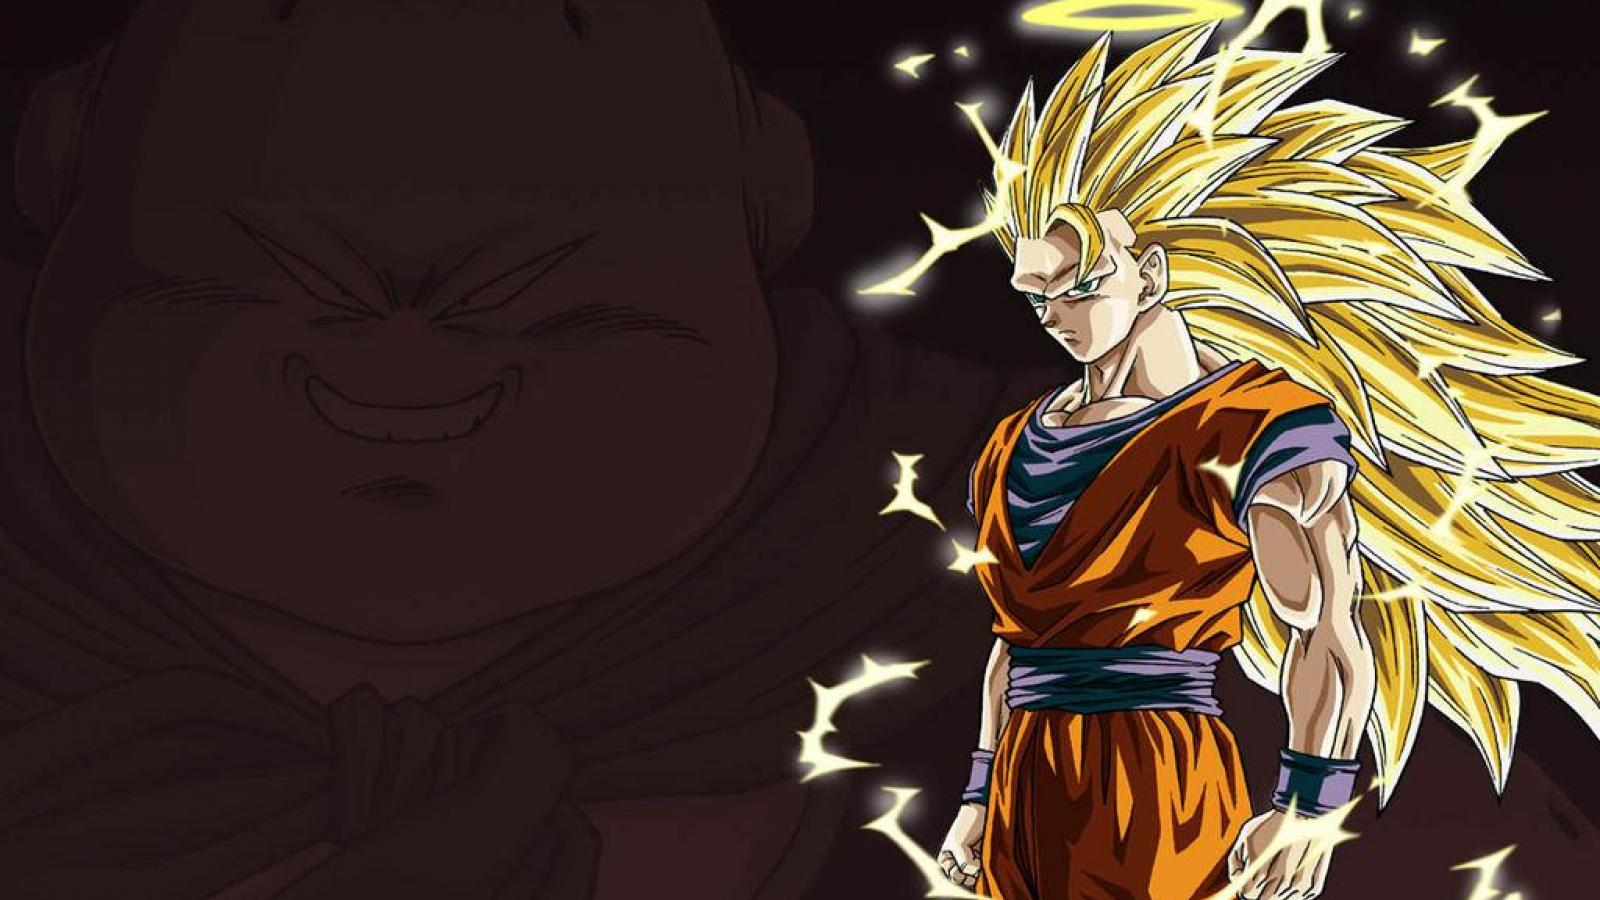 goku super saiyan wallpaper hd - sf wallpaper